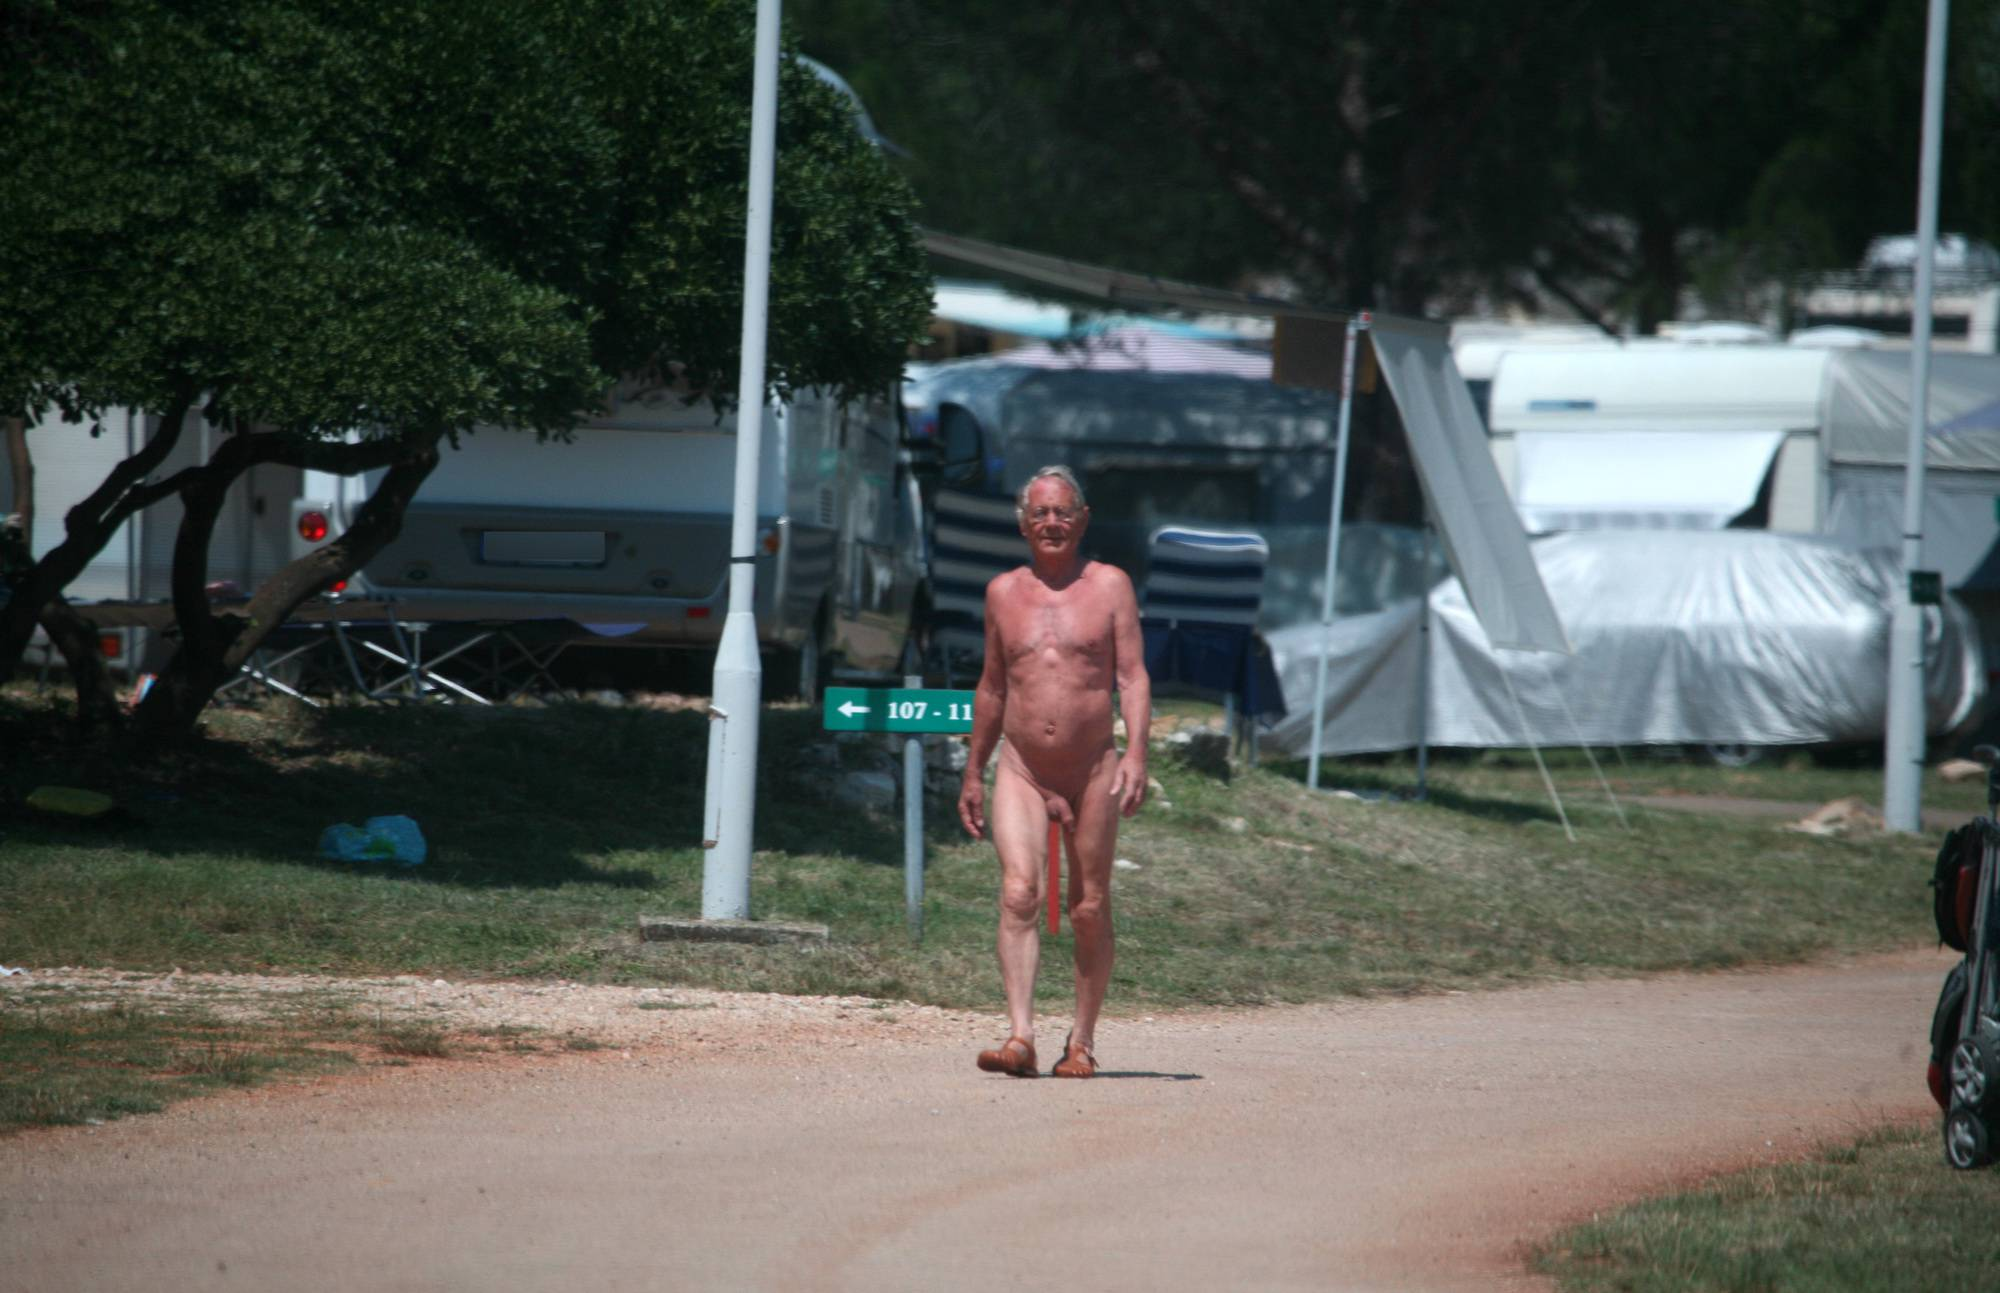 Nudist Photos Packup and Nudists Leaving - 2